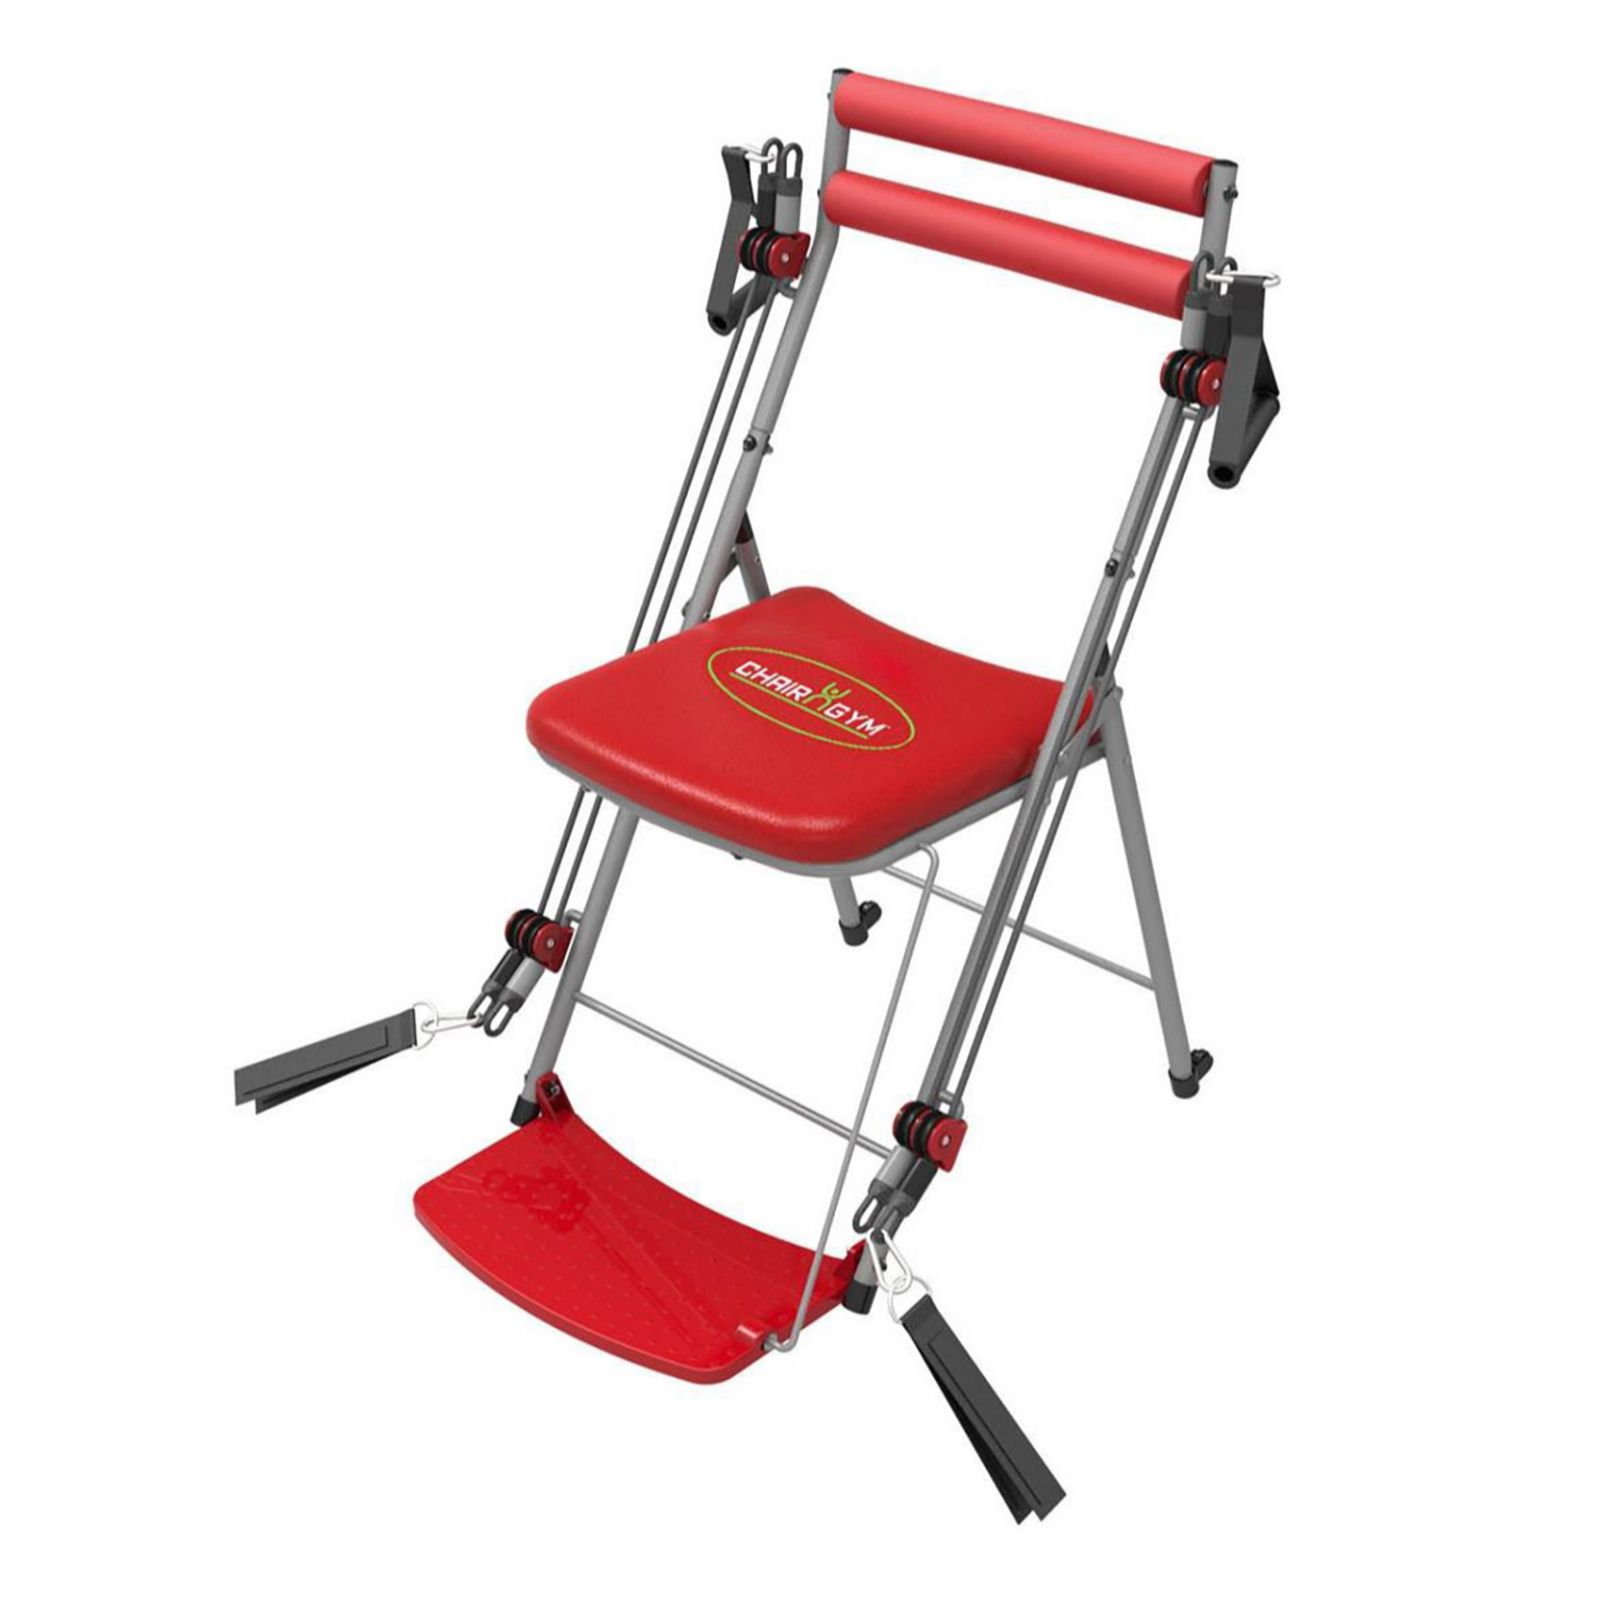 Pleasing Chair Gym Total Body Exercise System With Twister Seat 5 Dvds Qvc Uk Ncnpc Chair Design For Home Ncnpcorg